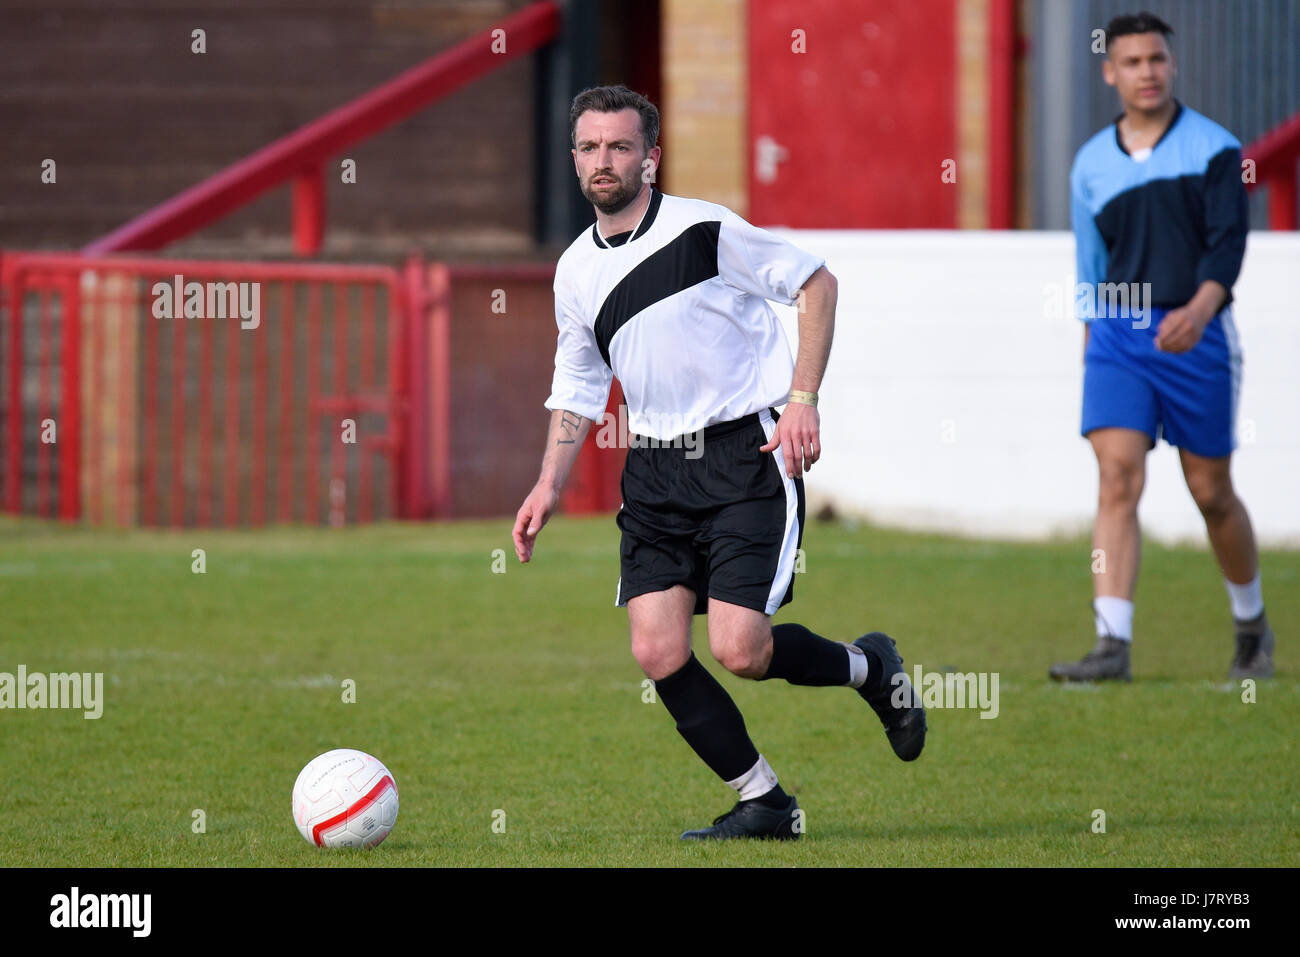 Rocky Sivell playing in a charity football match in Dagenham. Space for copy - Stock Image